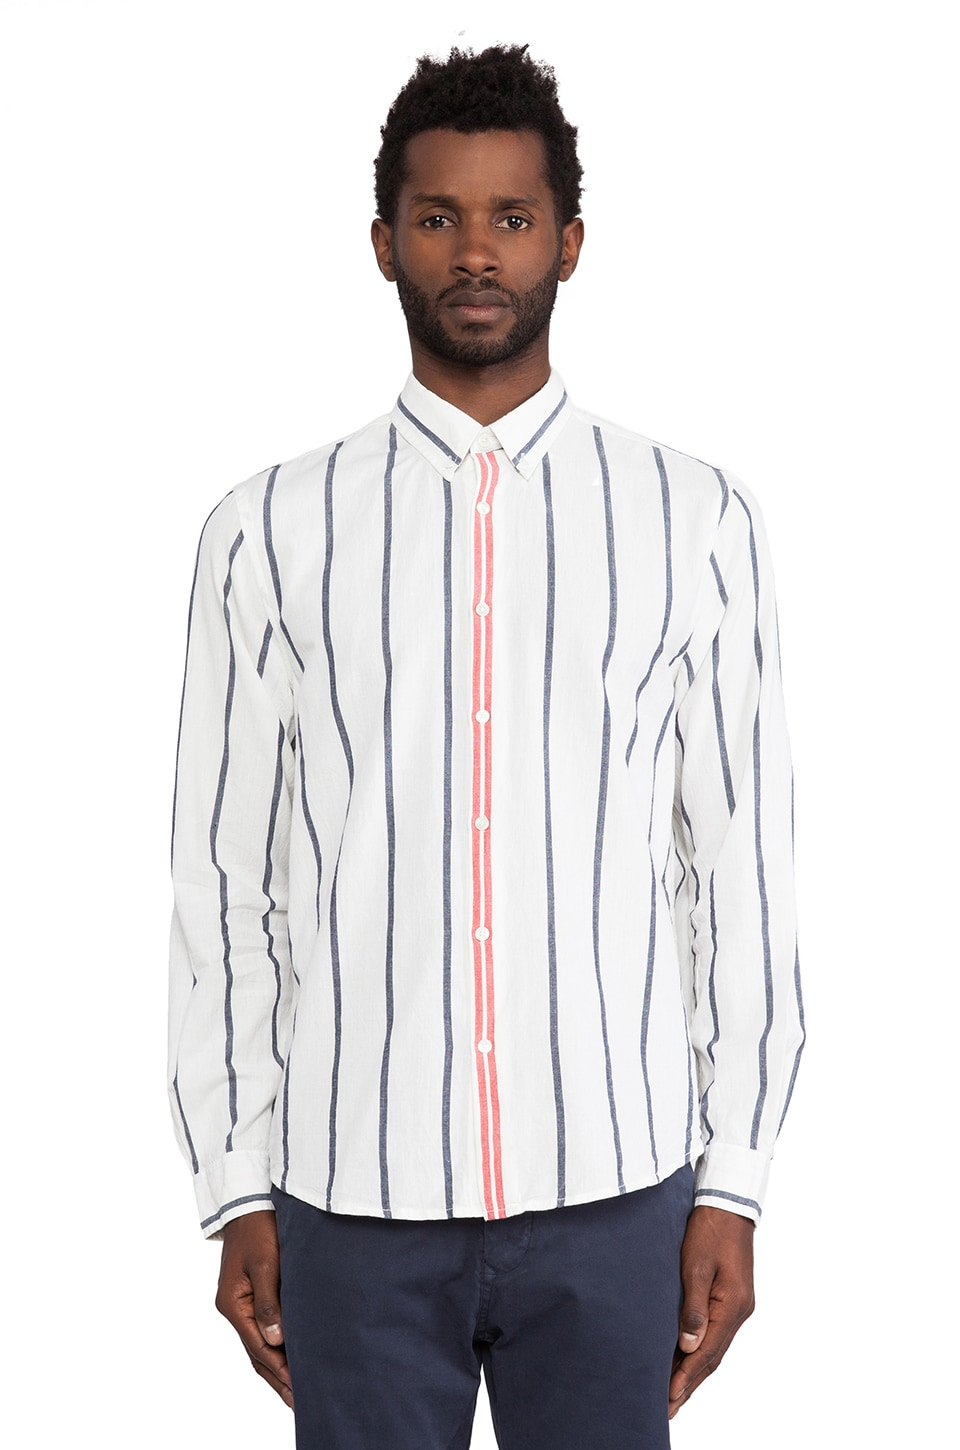 Burkman Bros. Selvedge Shirt in White Stripe